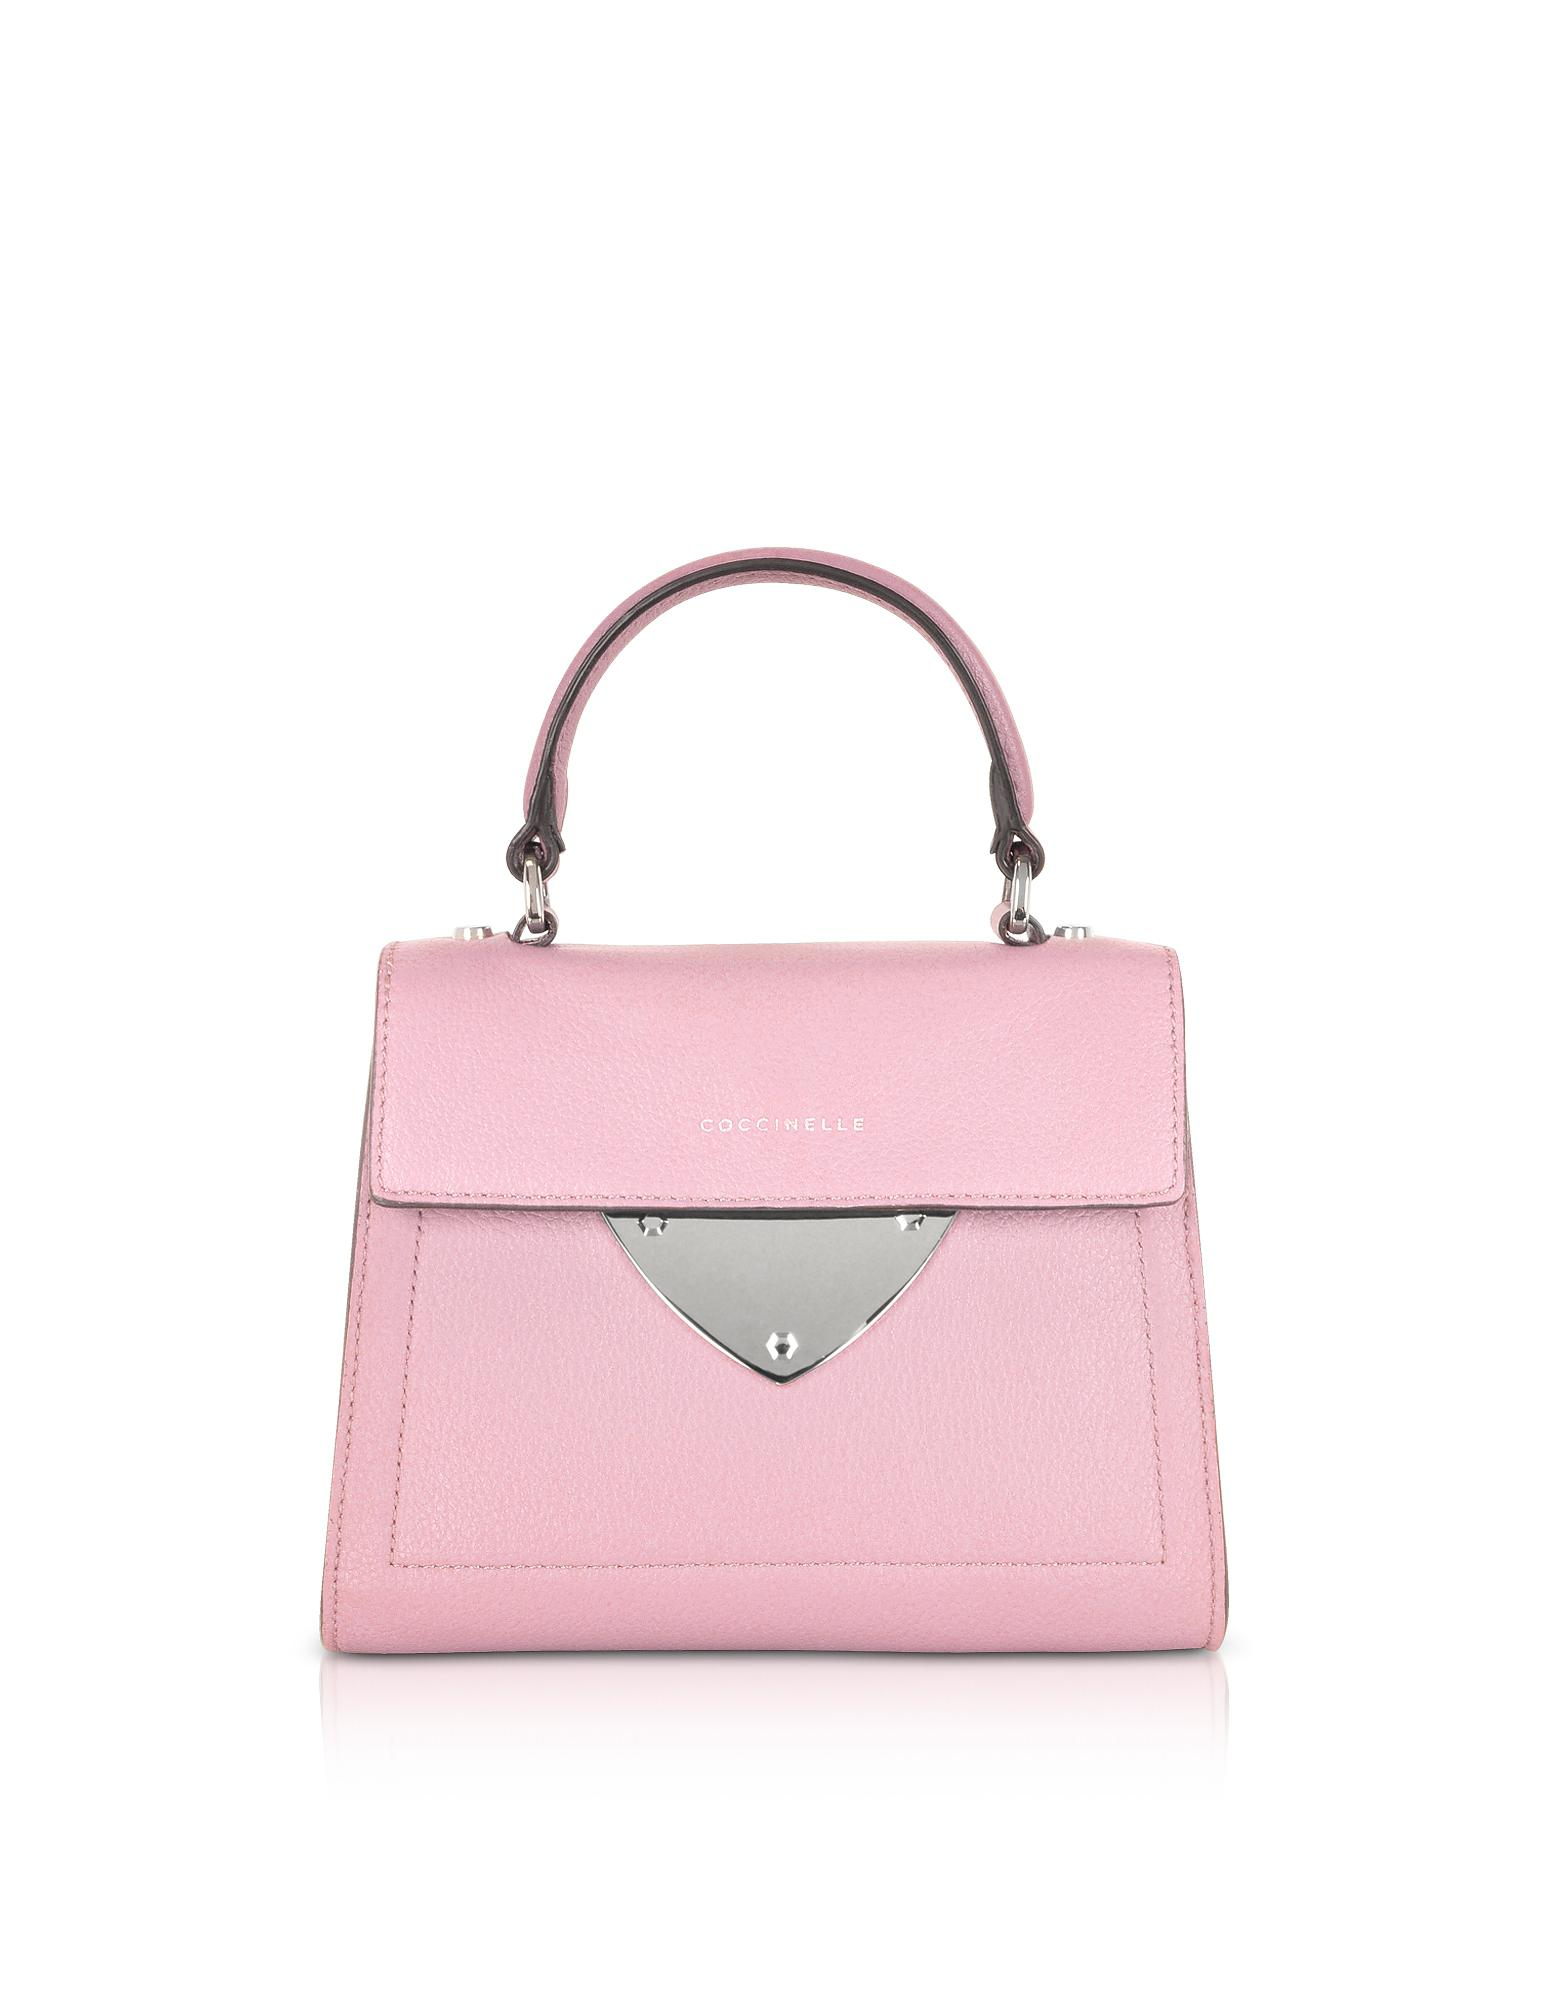 bf1cf463035 Lyst - Coccinelle B14 Mini Leather Satchel Bag in Pink